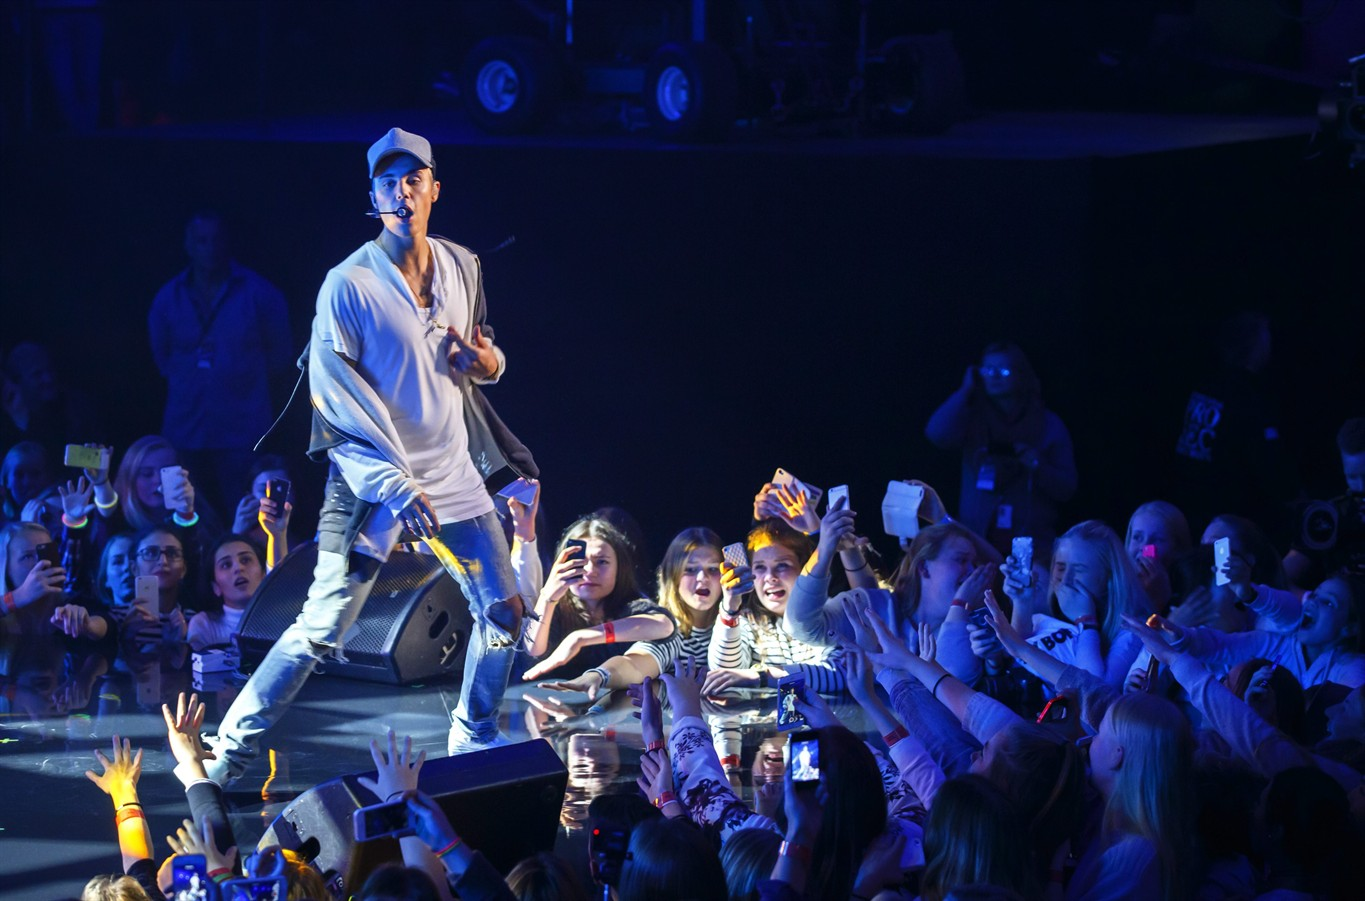 Justin Bieber quits concert after 1 song because rowdy ...